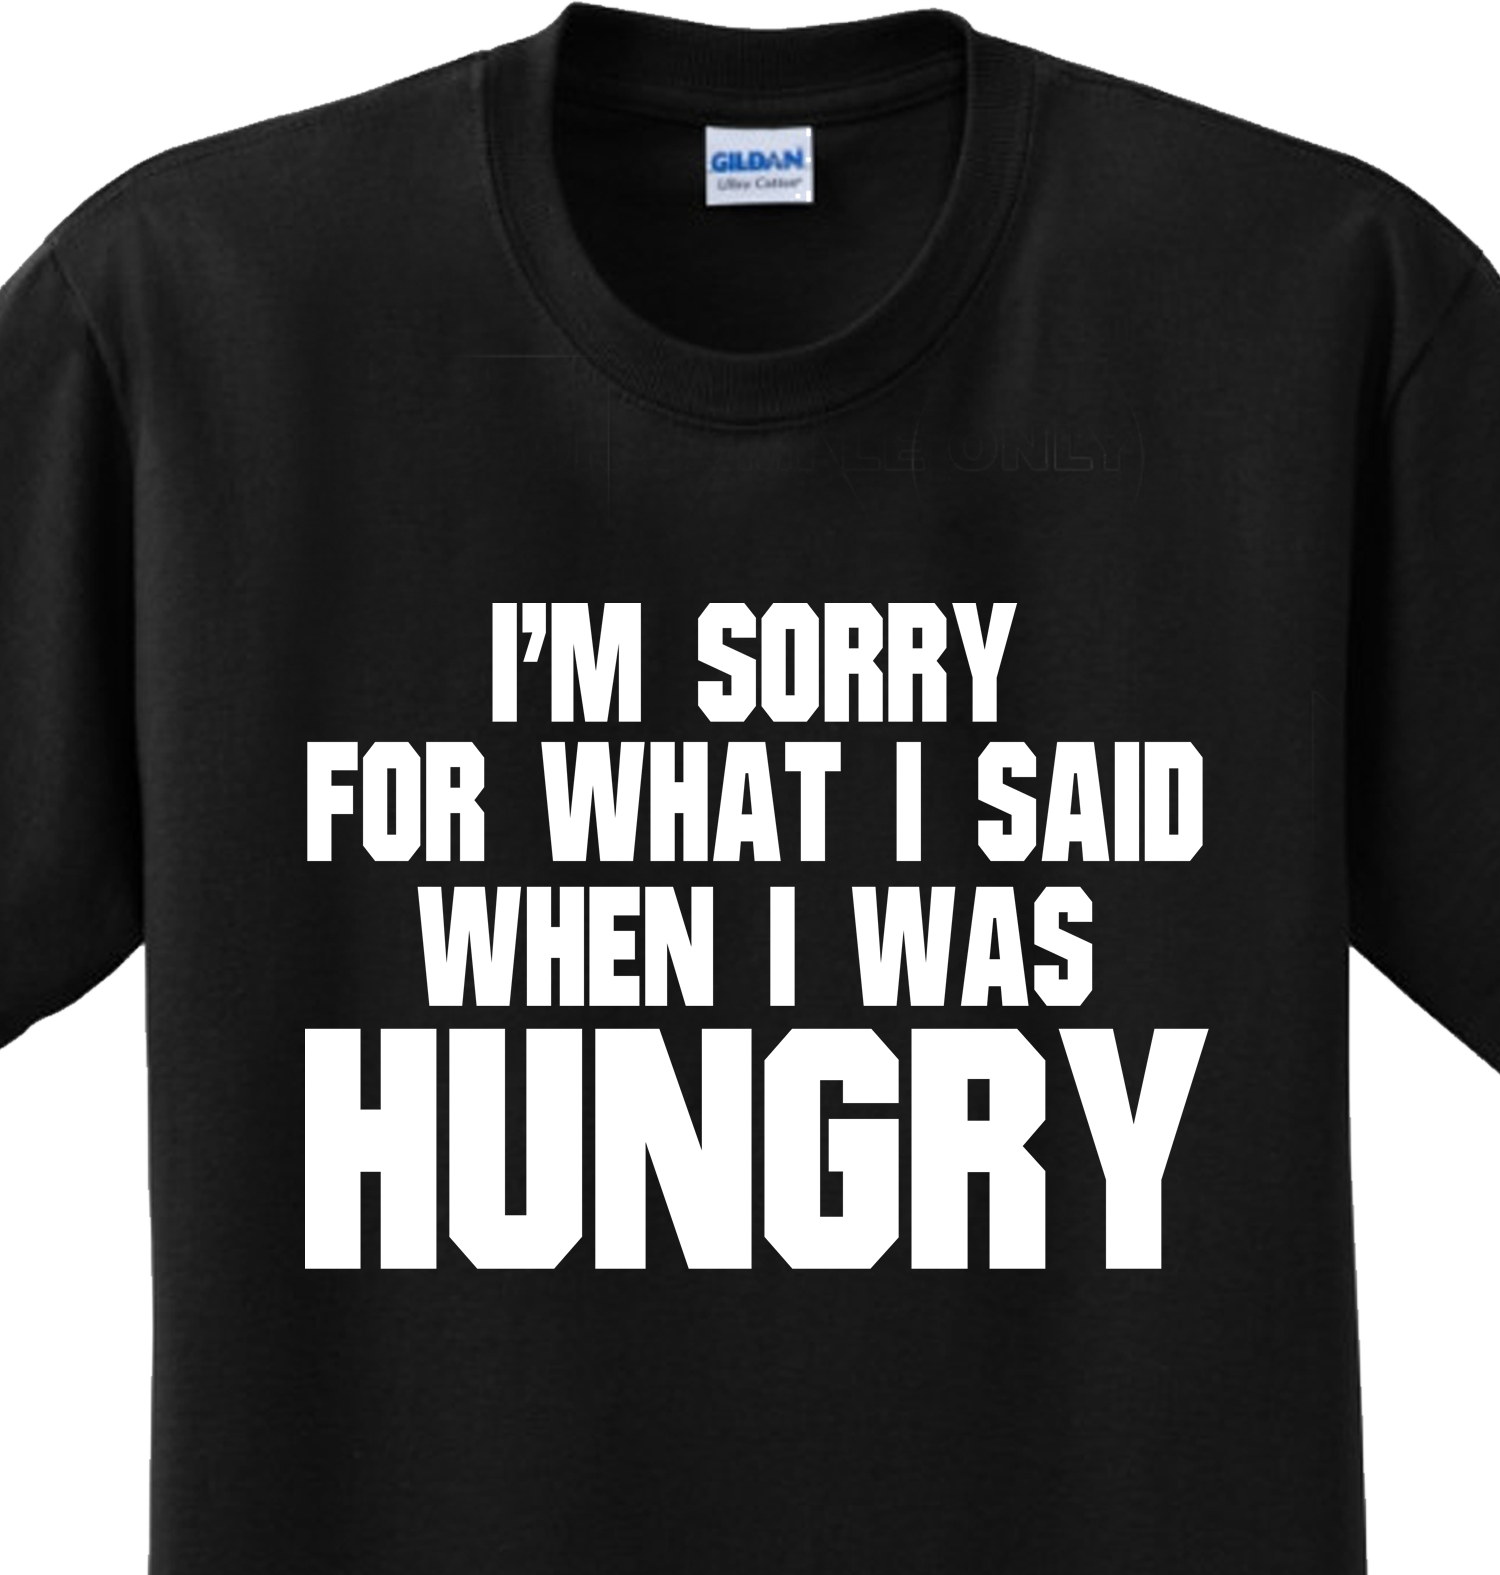 Black t shirt quotes - This Hilarious T Shirt Makes An Excellent Gift All Our T Shirts Are High Quality Pre Shrunk 100 Cotton Blends We Stock Only Professionally Printed Items